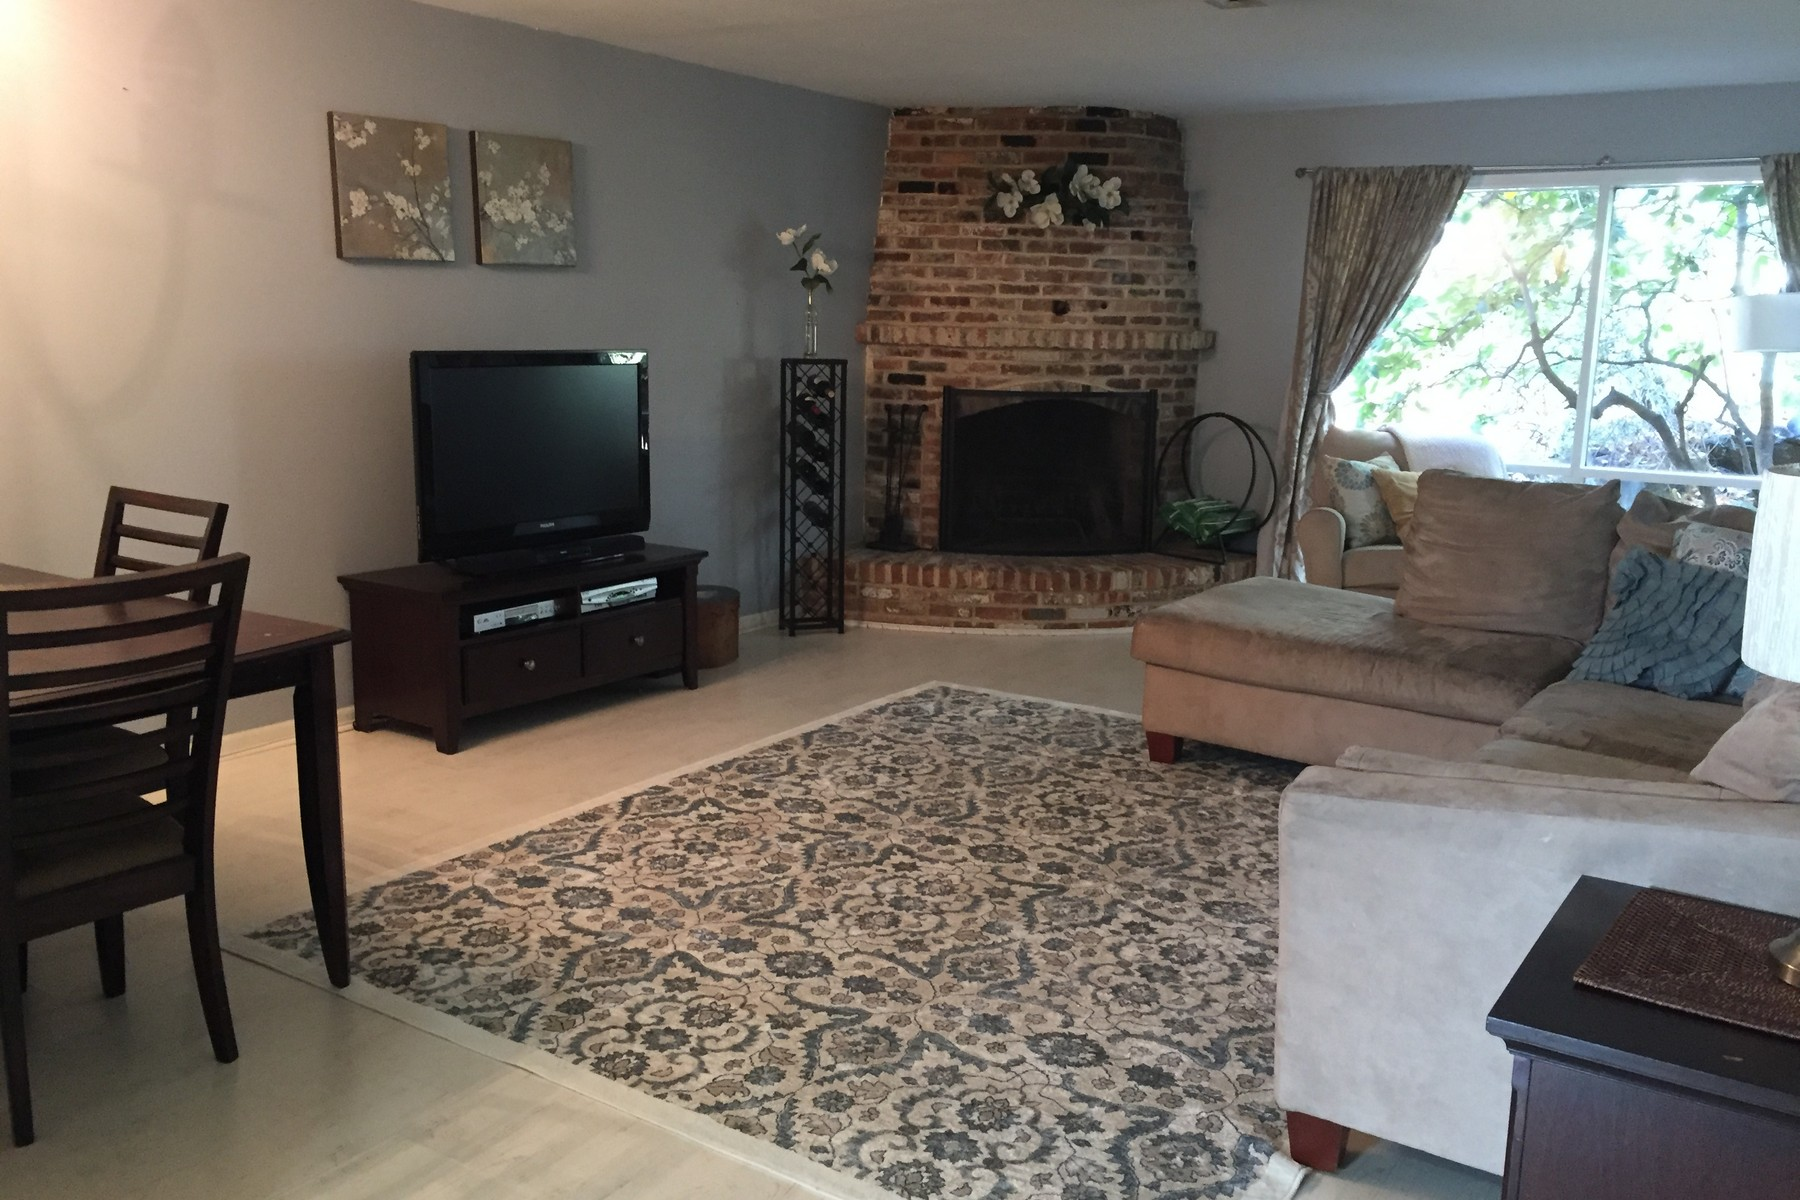 Condominium for Sale at Desirable Ledgebrook 22 Ledgebrook Drive 22 Norwalk, Connecticut, 06854 United States